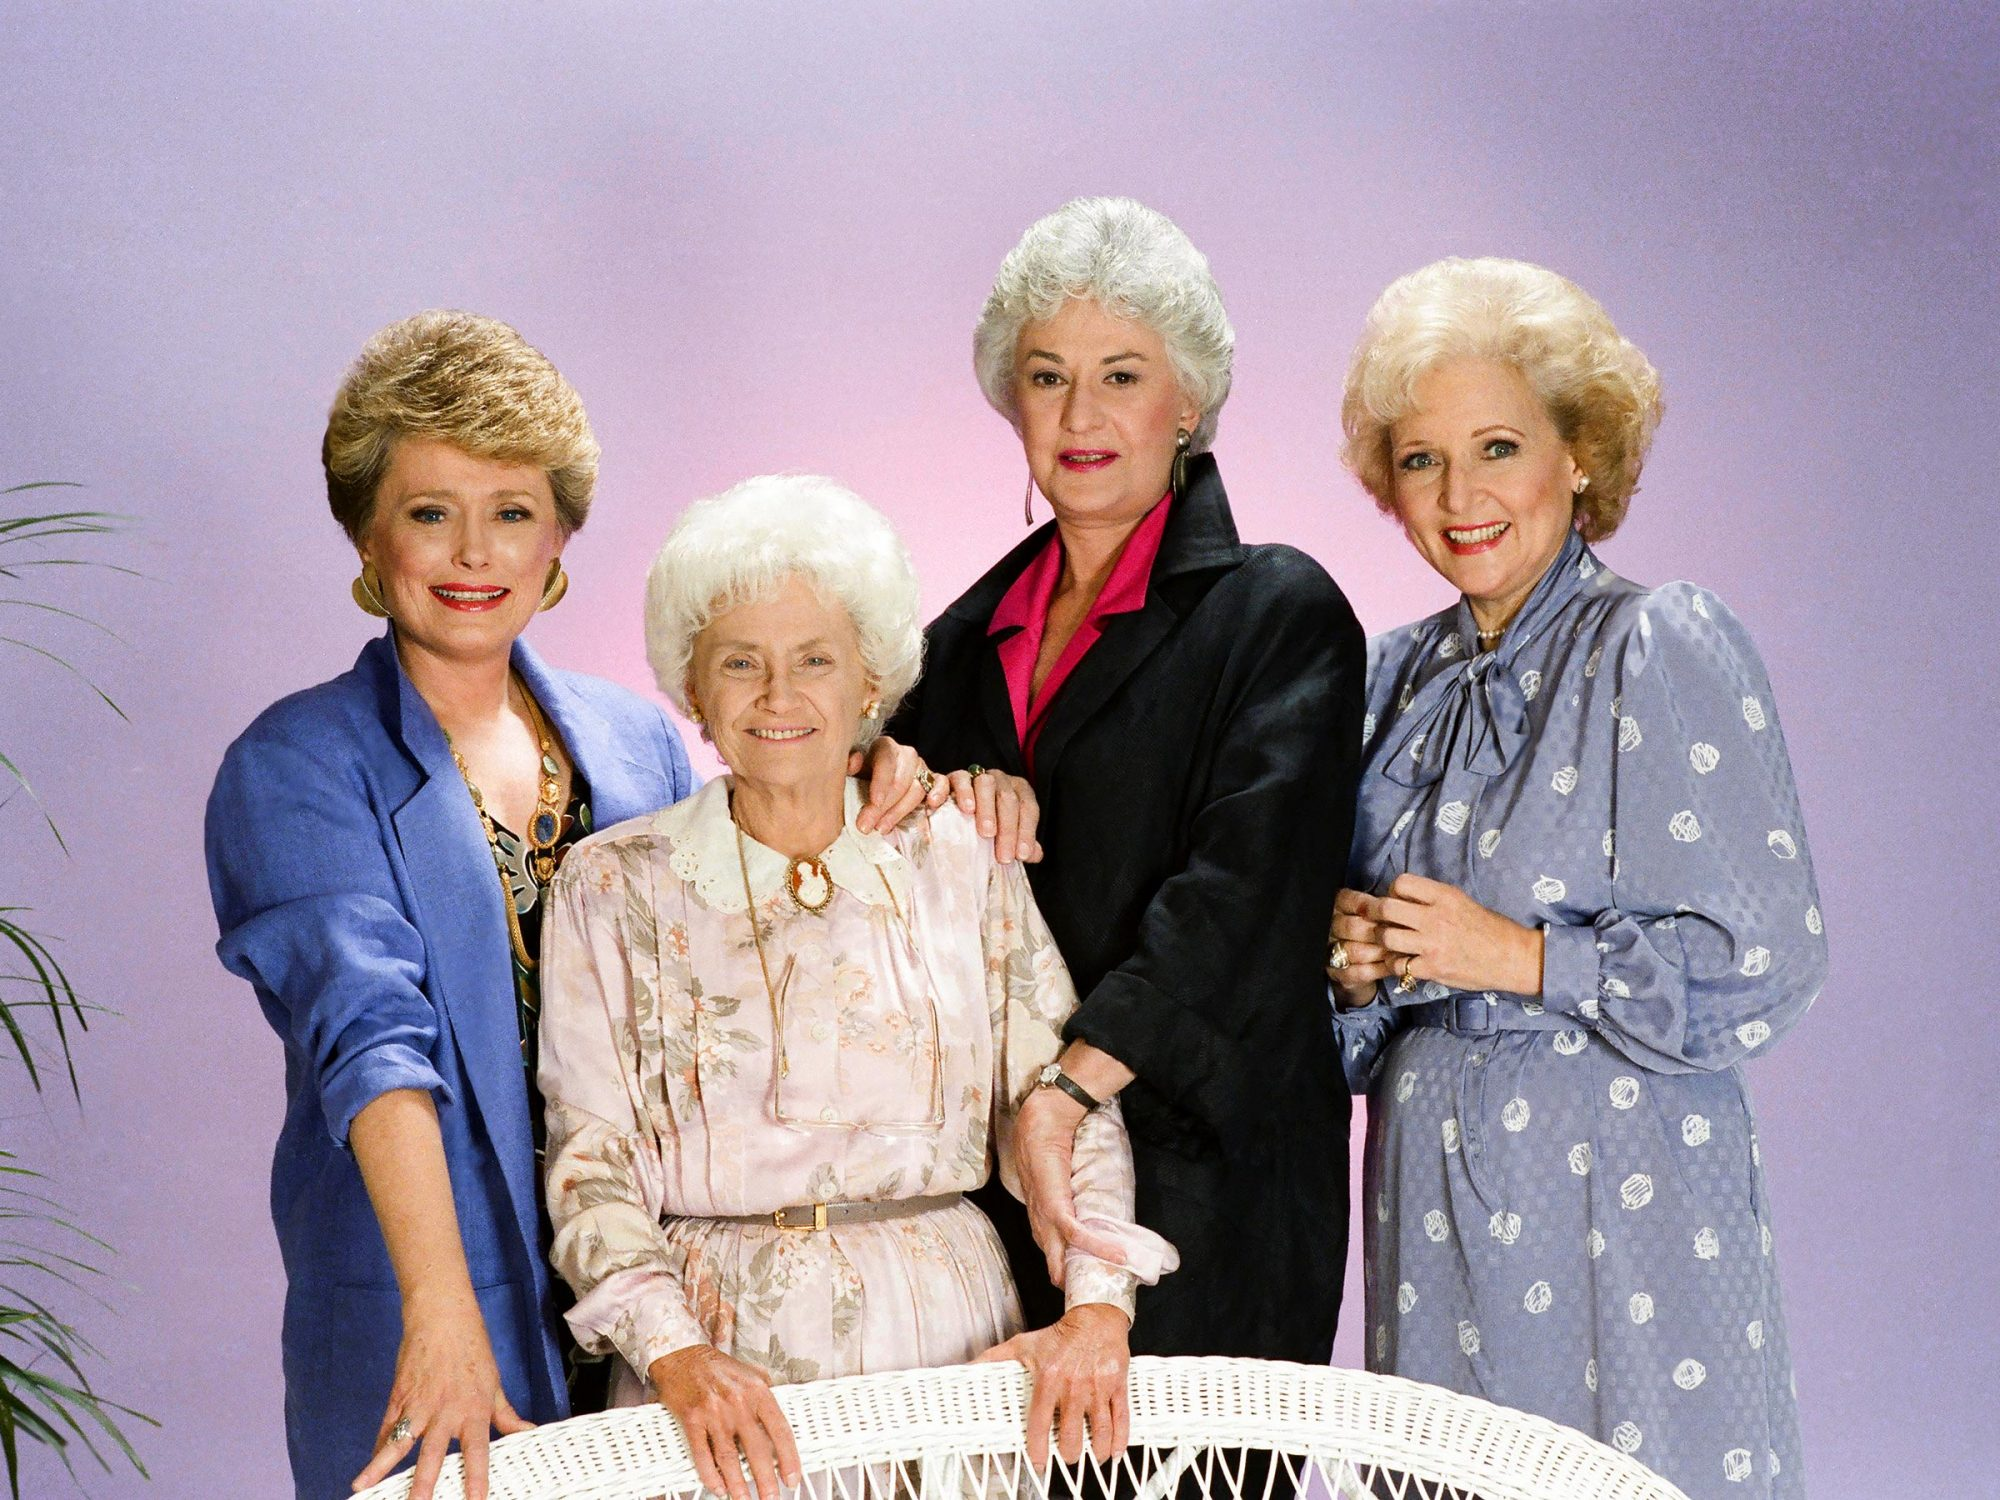 'The Golden Girls' is coming to Hulu